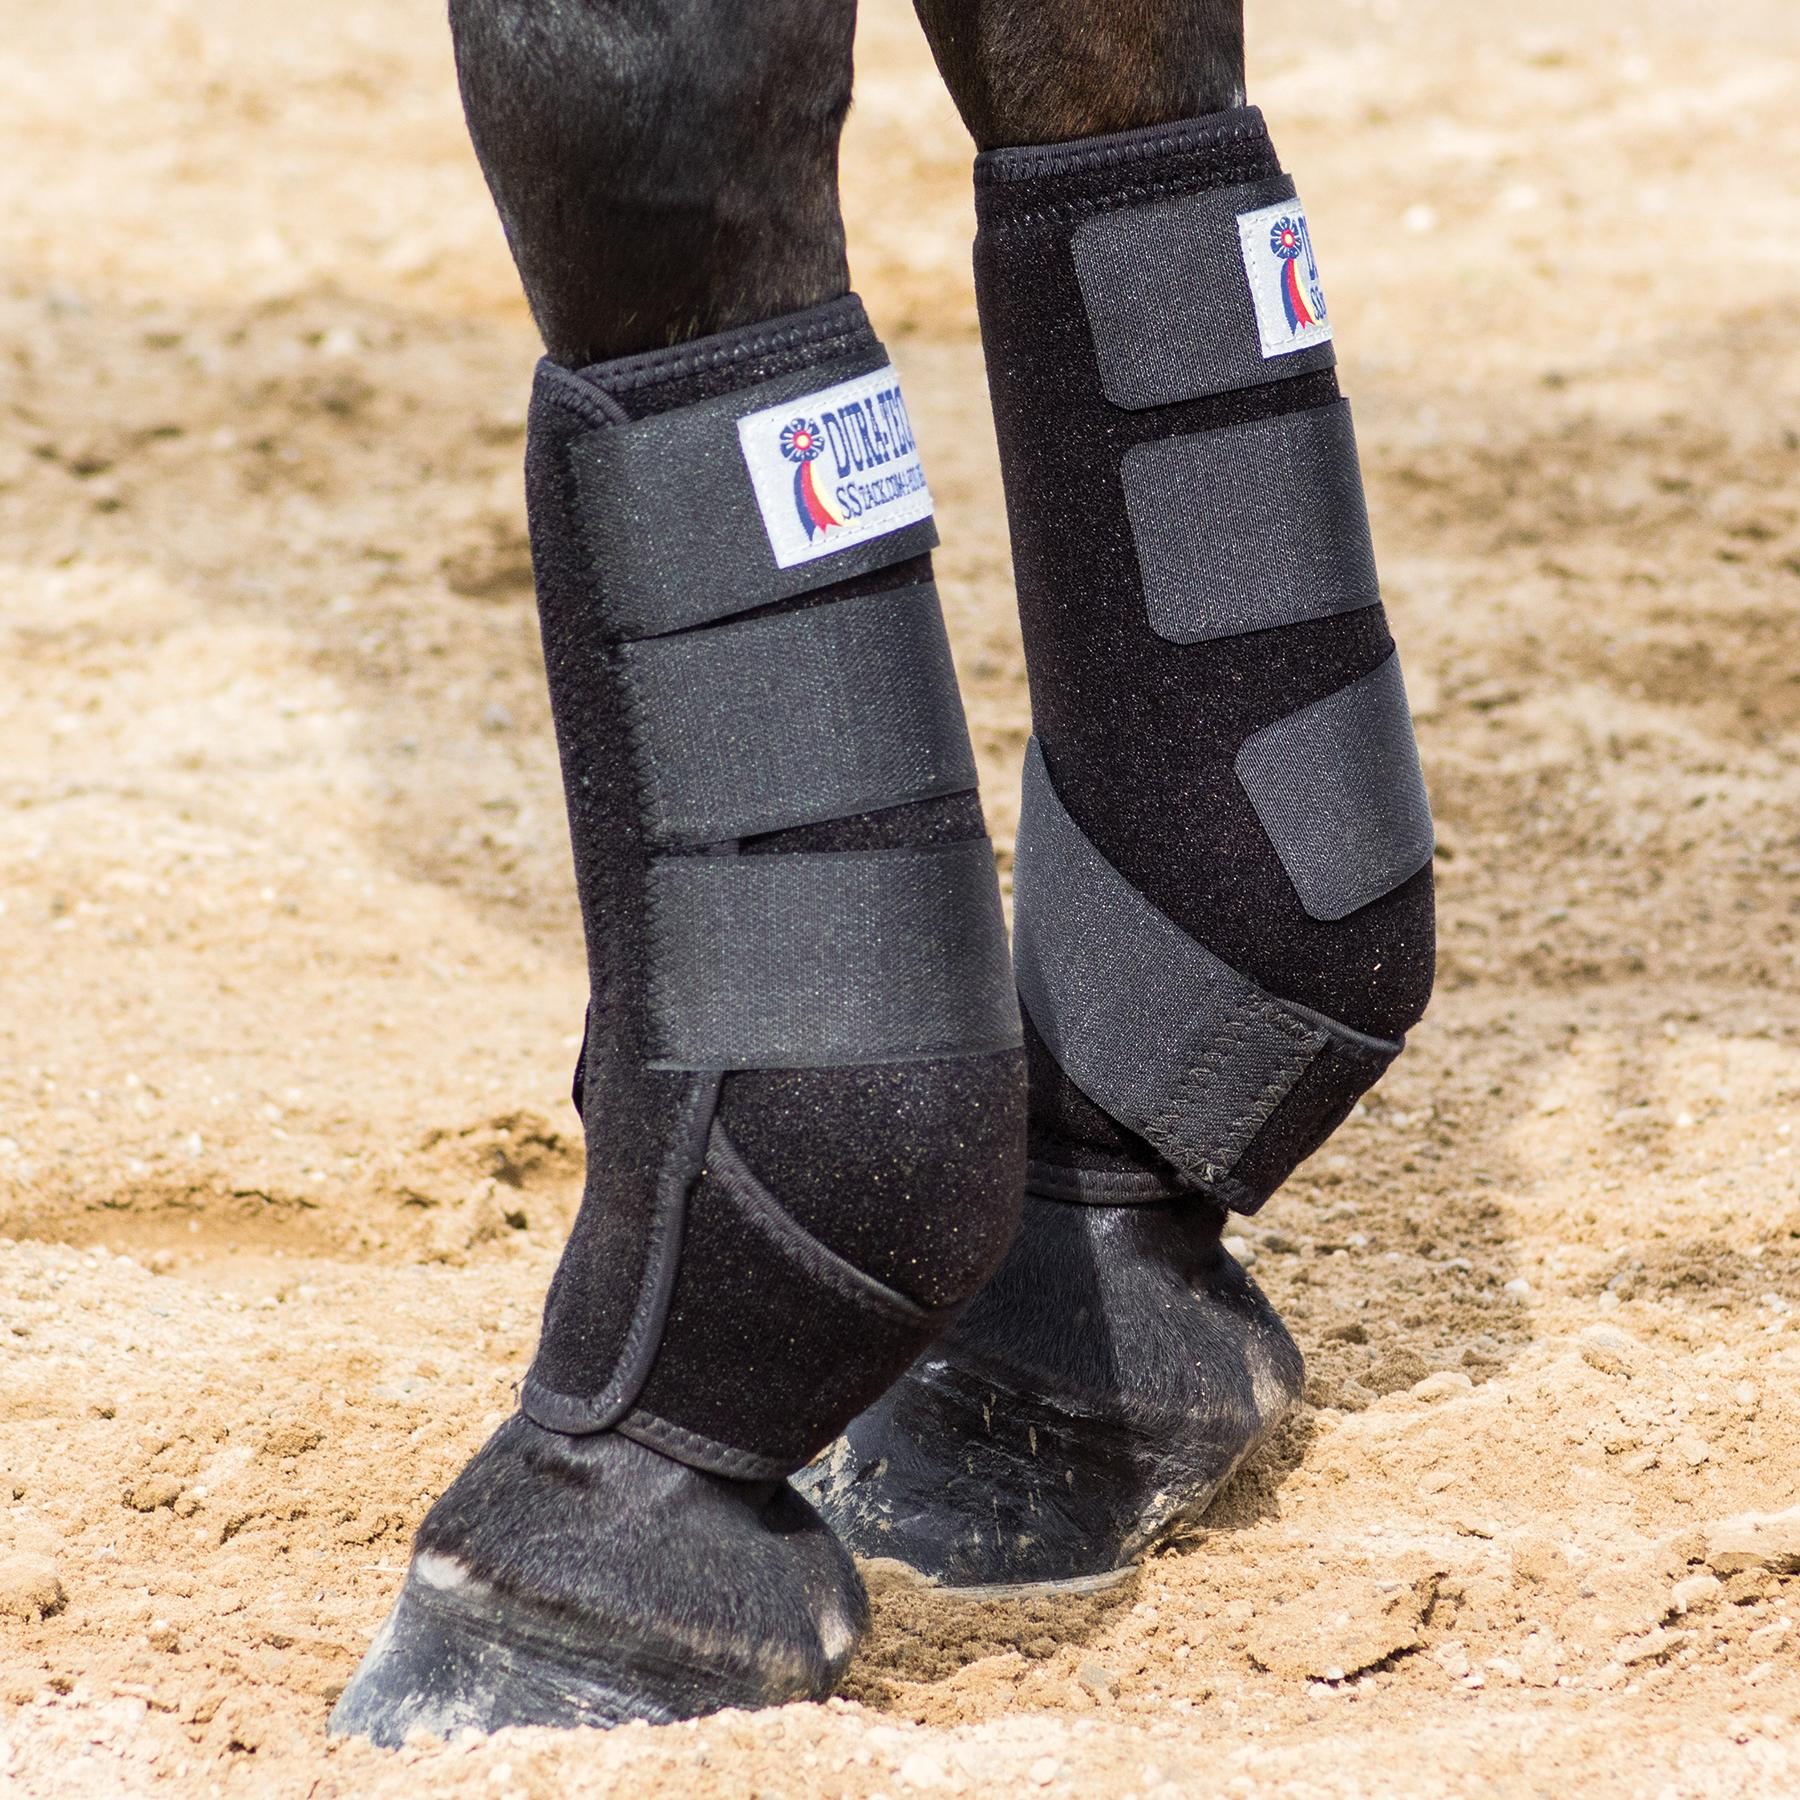 Dura-Tech® Extra Support Neoprene Boots